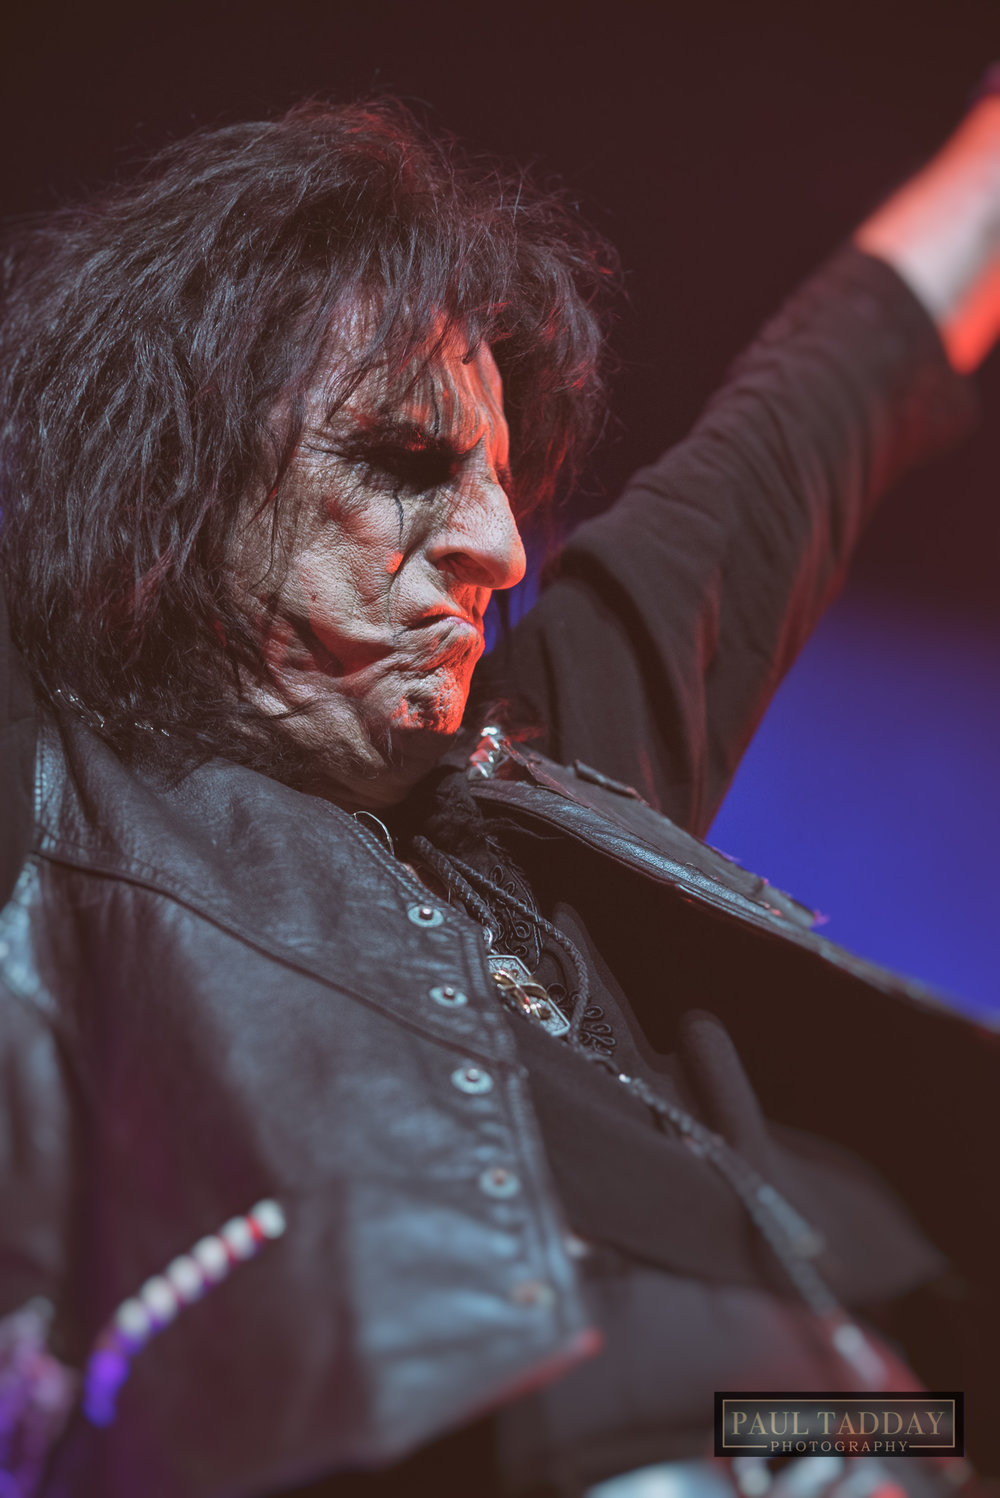 alice cooper - melbourne - paul tadday photography - 201017 - 18.jpg